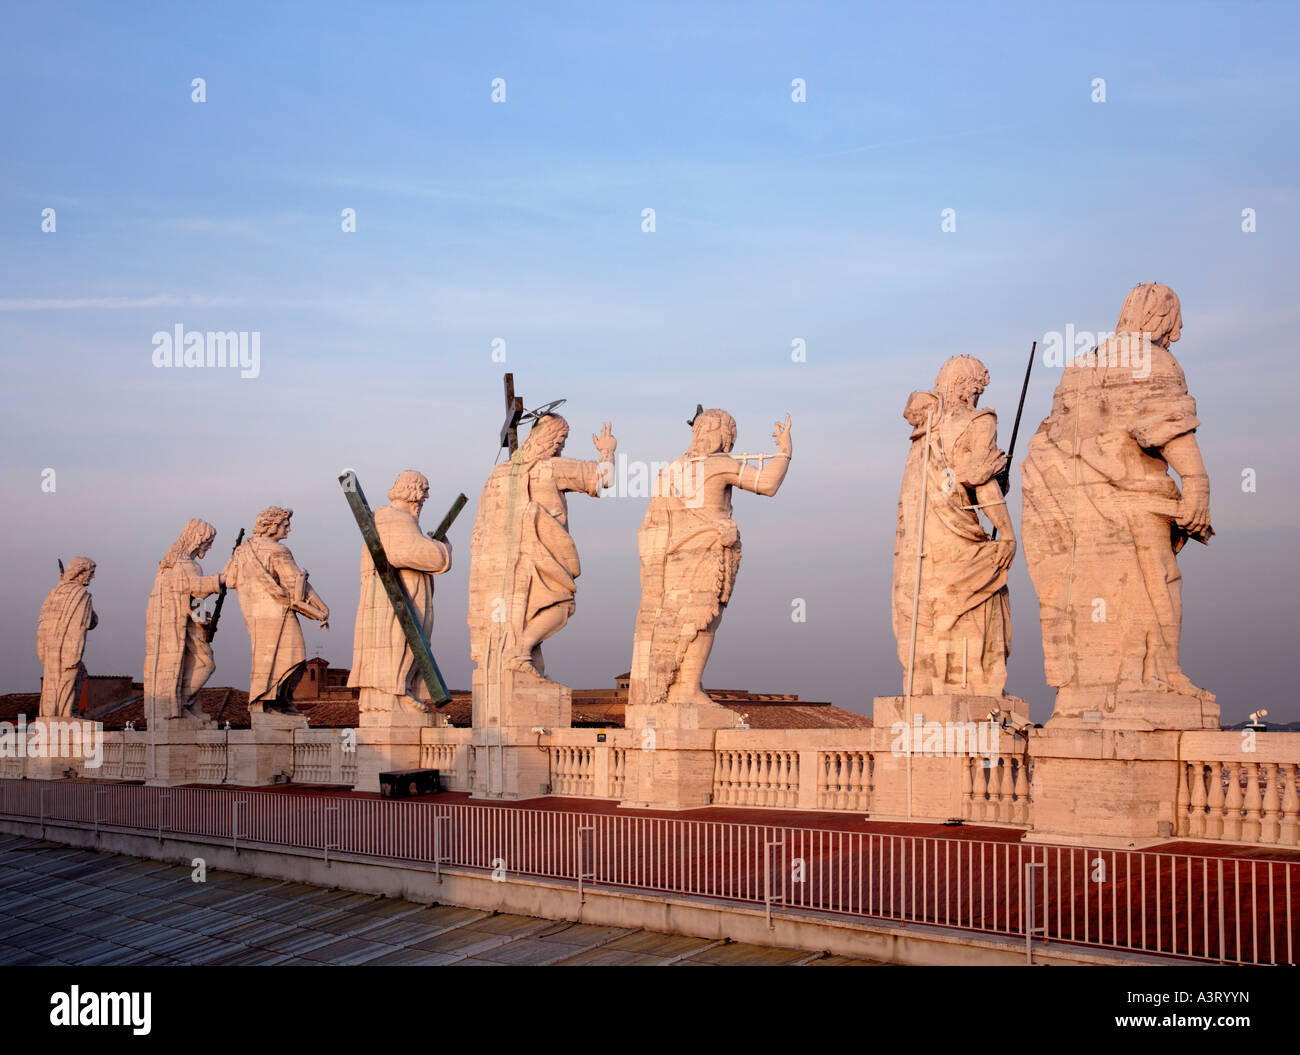 The Statues in Travertine Vatican City Rome Italy - Stock Image